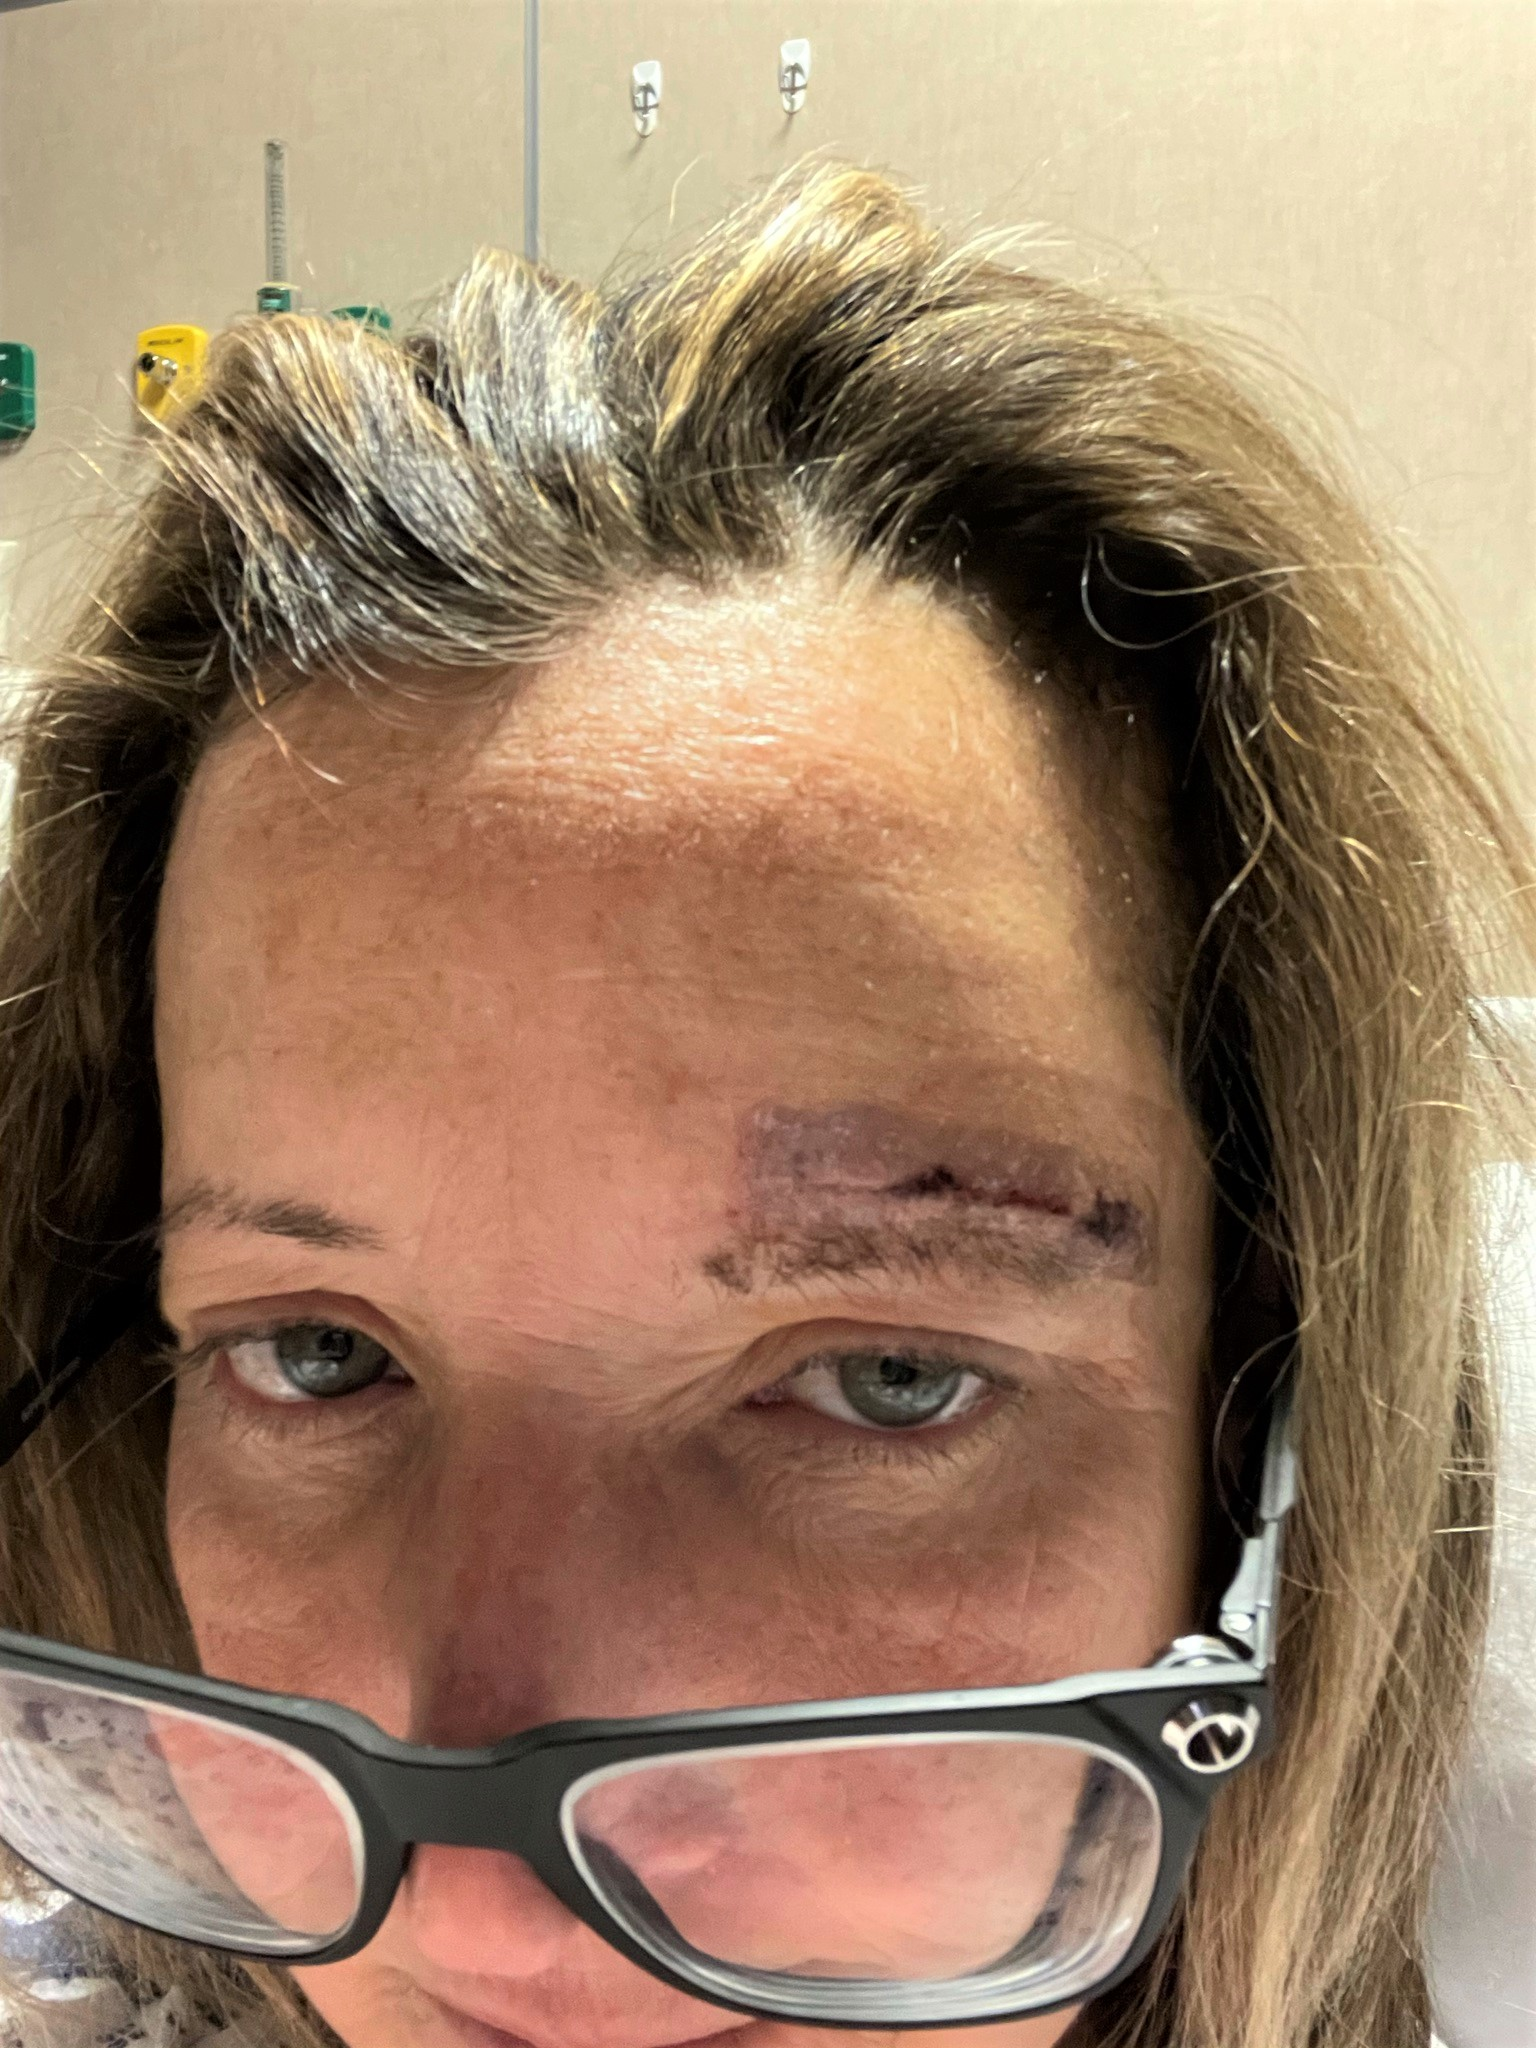 Woman in hospital post craniotomy